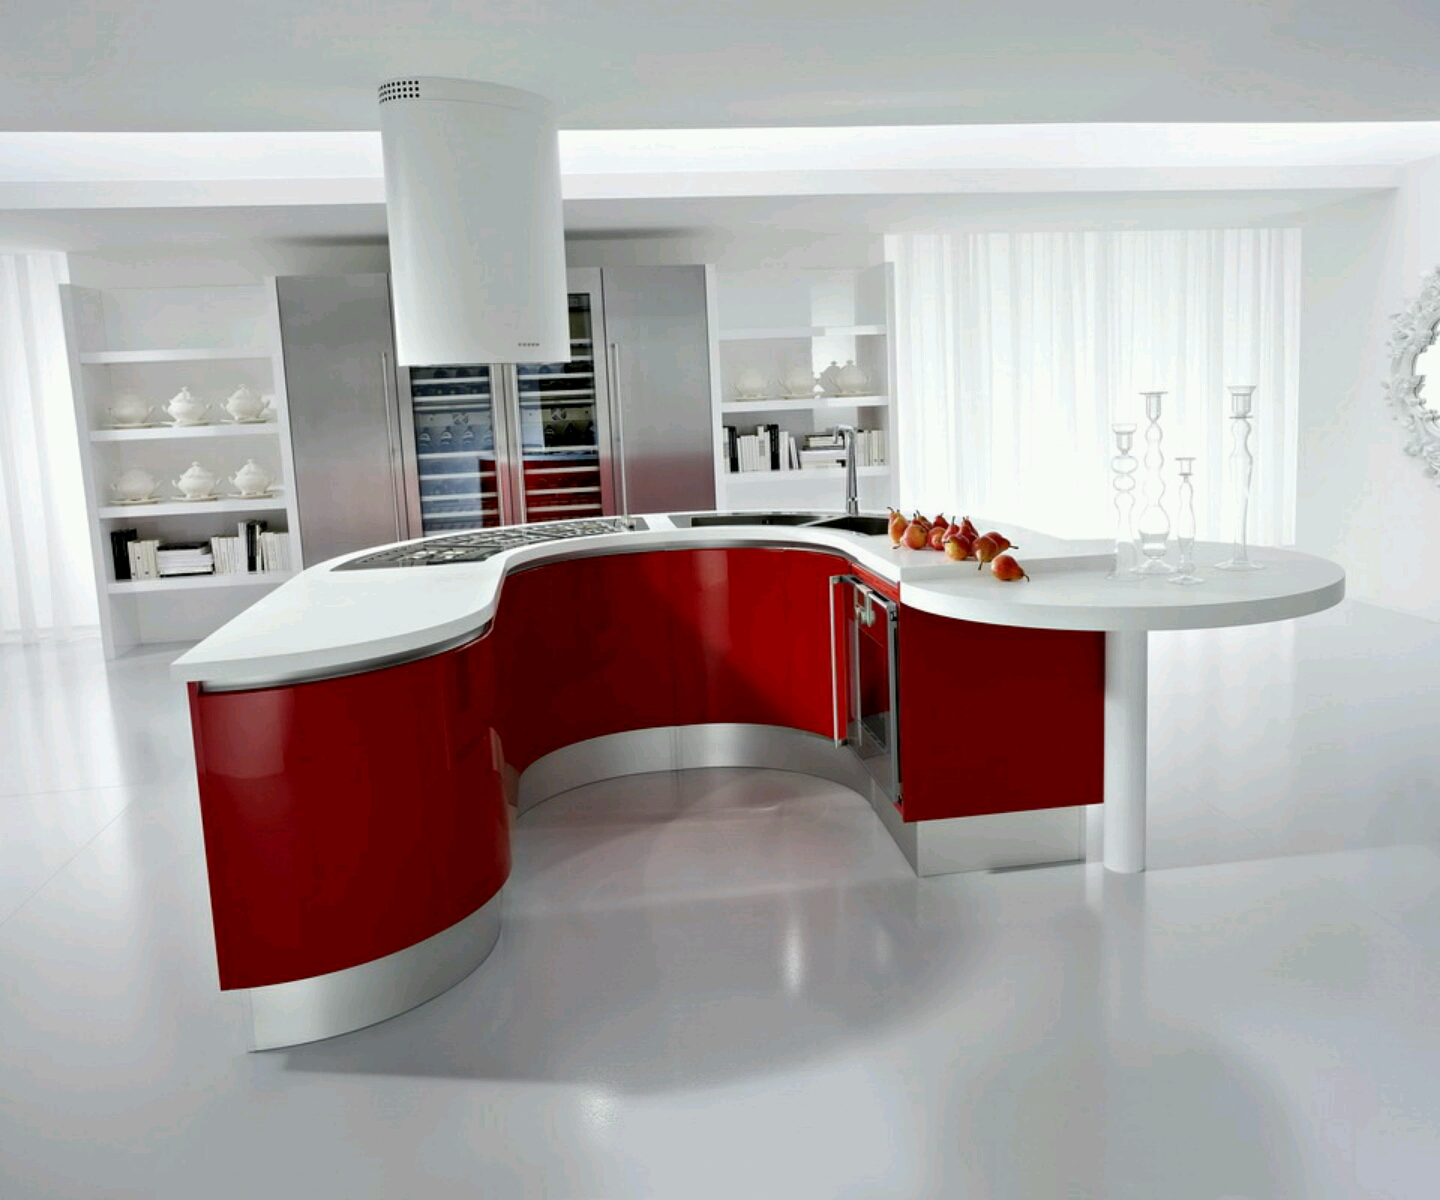 Modern kitchen cabinets designs ideas furniture gallery for New modern kitchen pictures